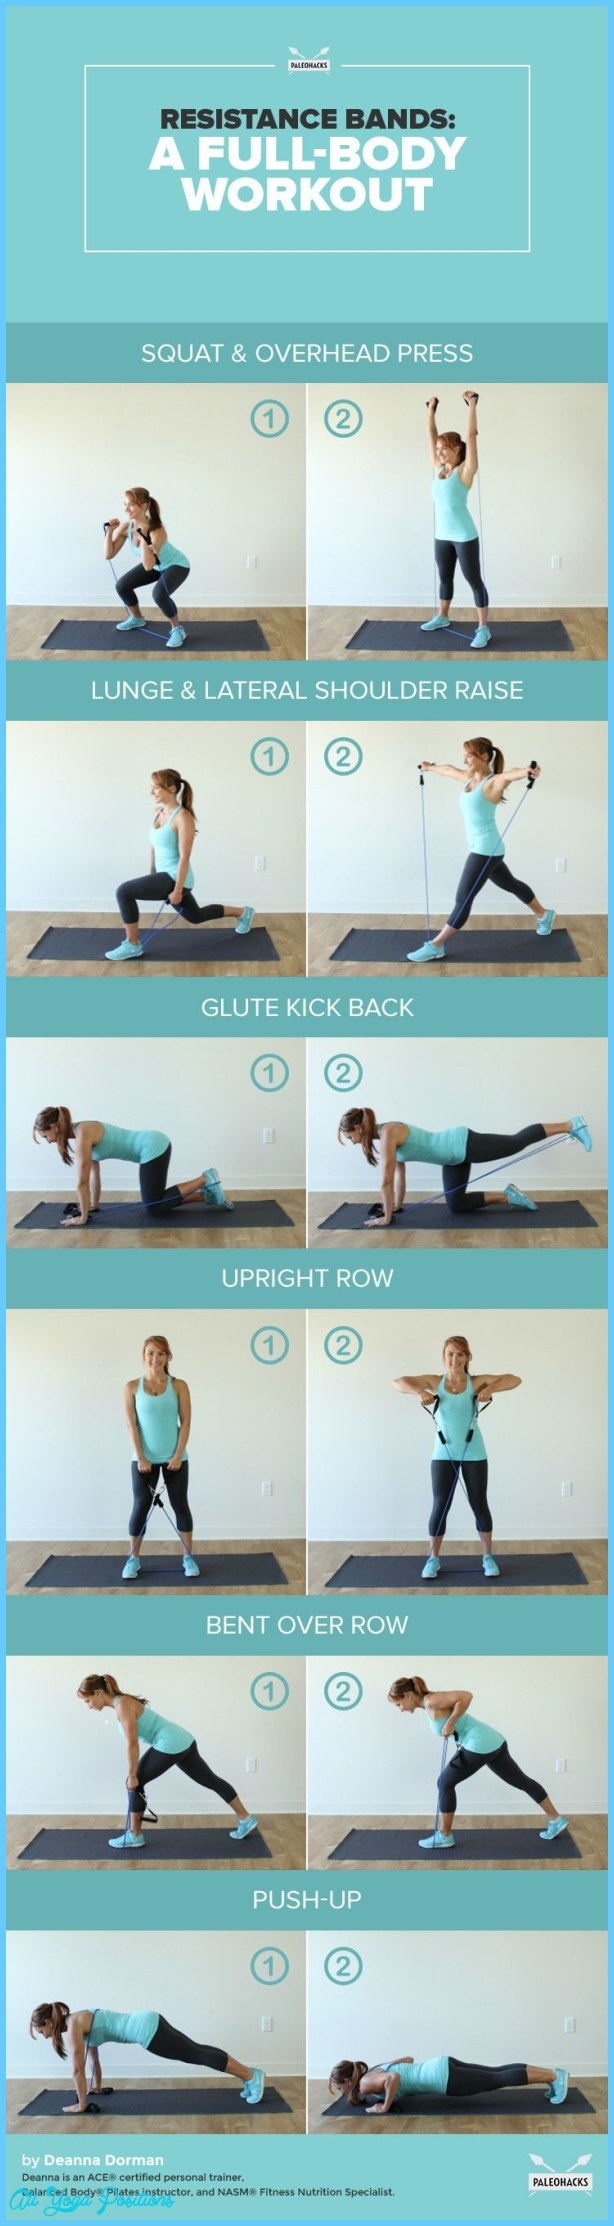 Resistance_Bands_A_Full-Body_Workout.jpg?x16148